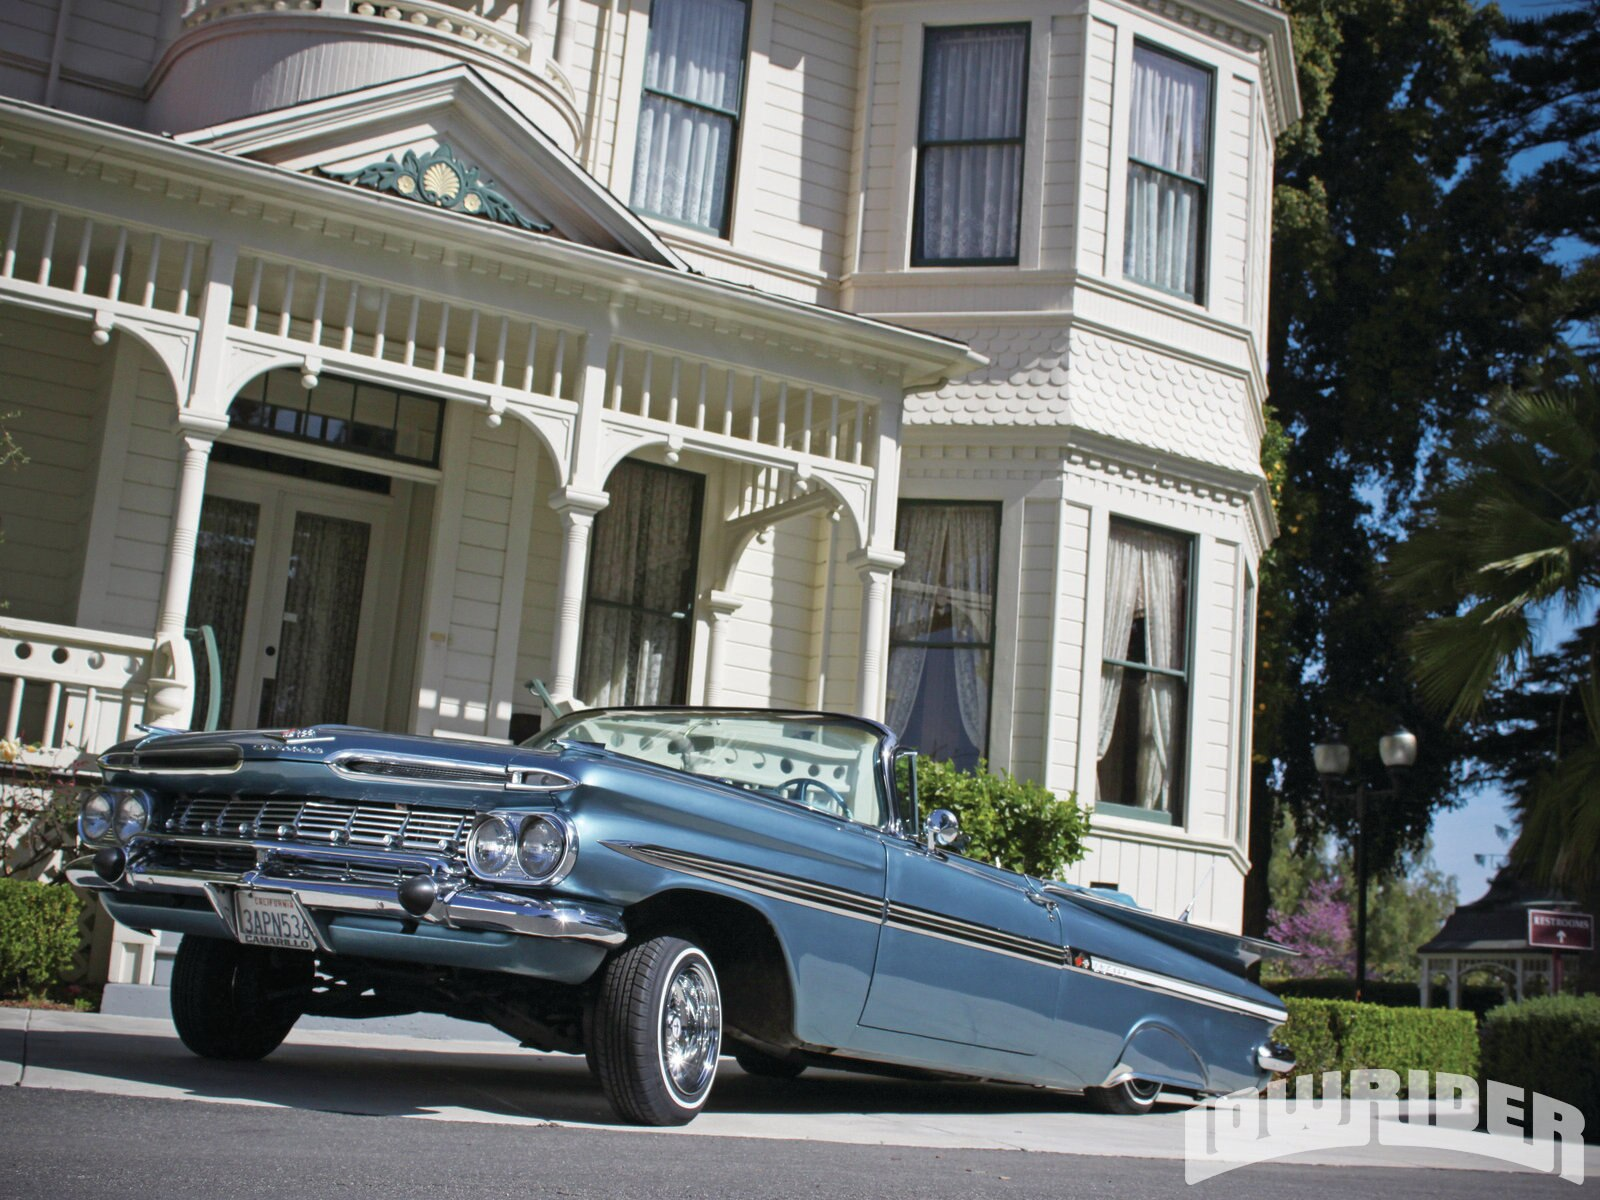 1110-lrmp-01-o-1959-chevrolet-impala-convertible-driver-side-front-view2